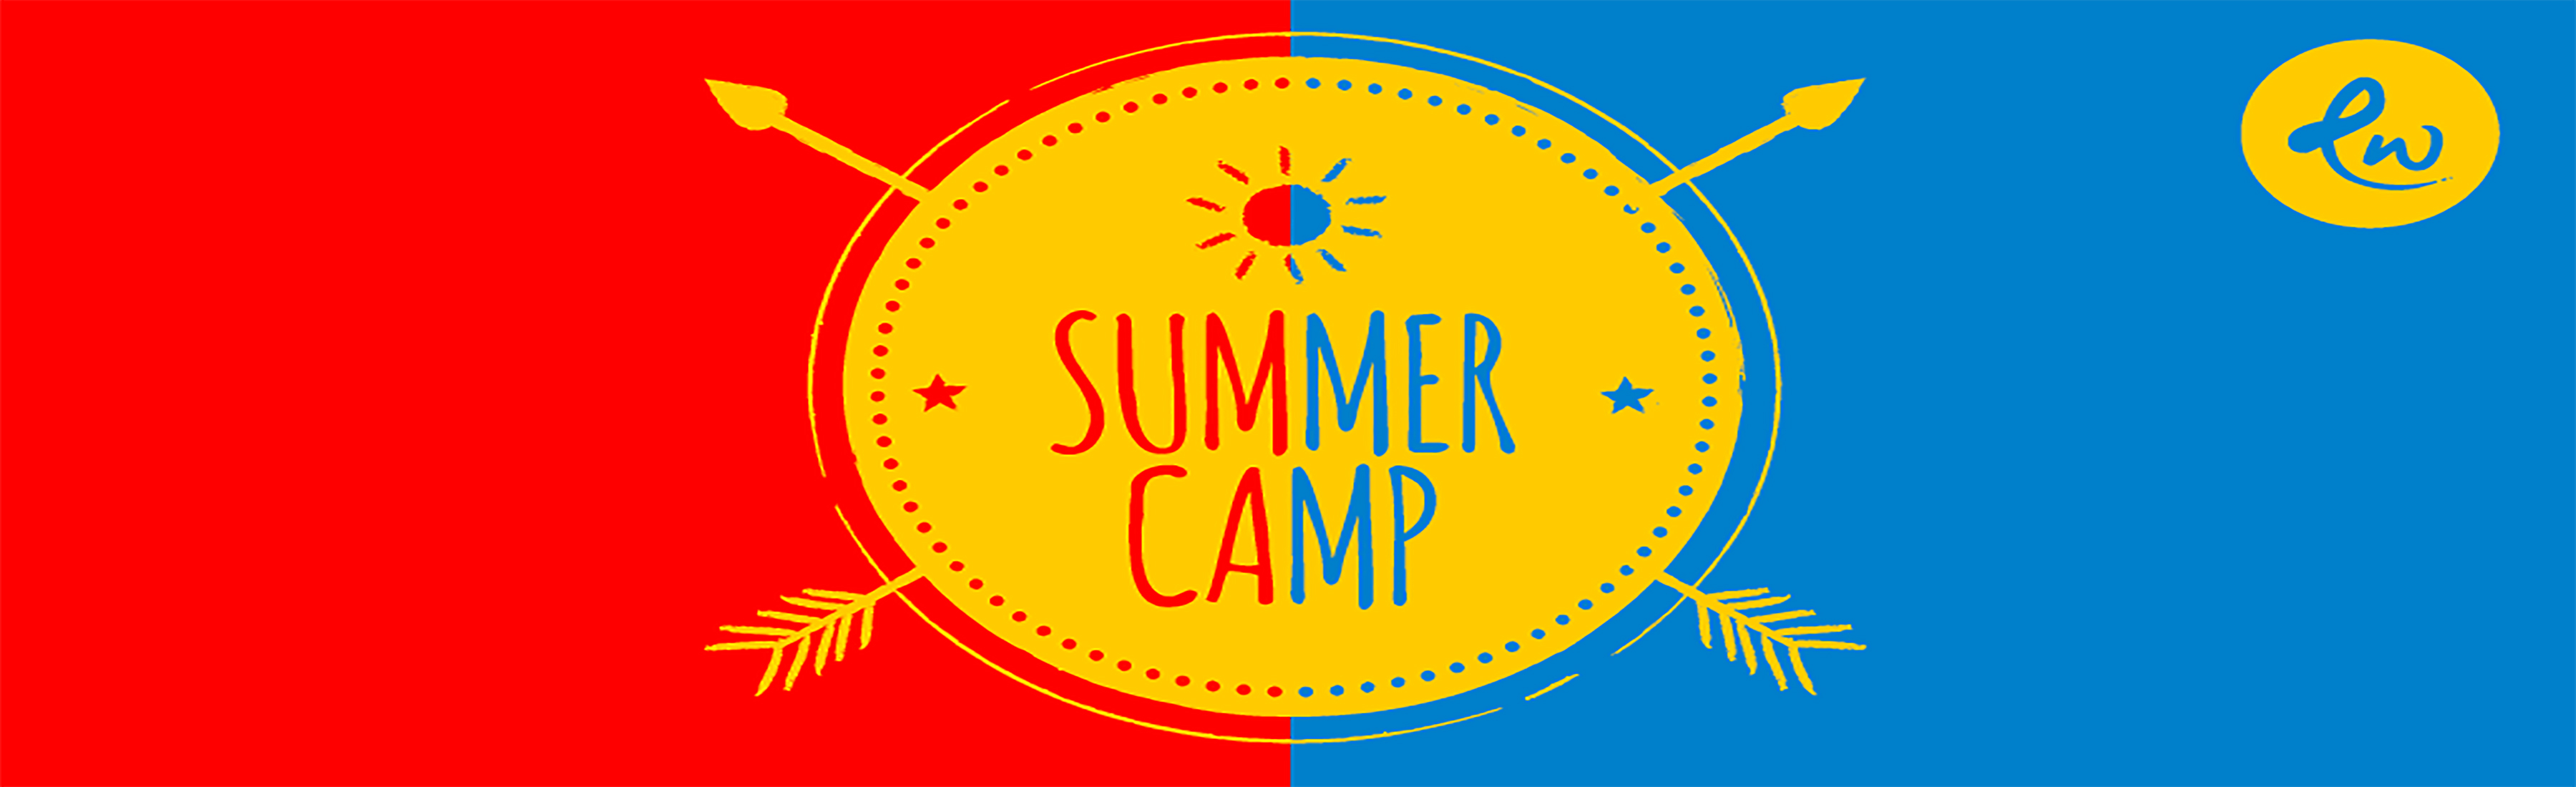 Summer Day Camp Slider 3600x1100